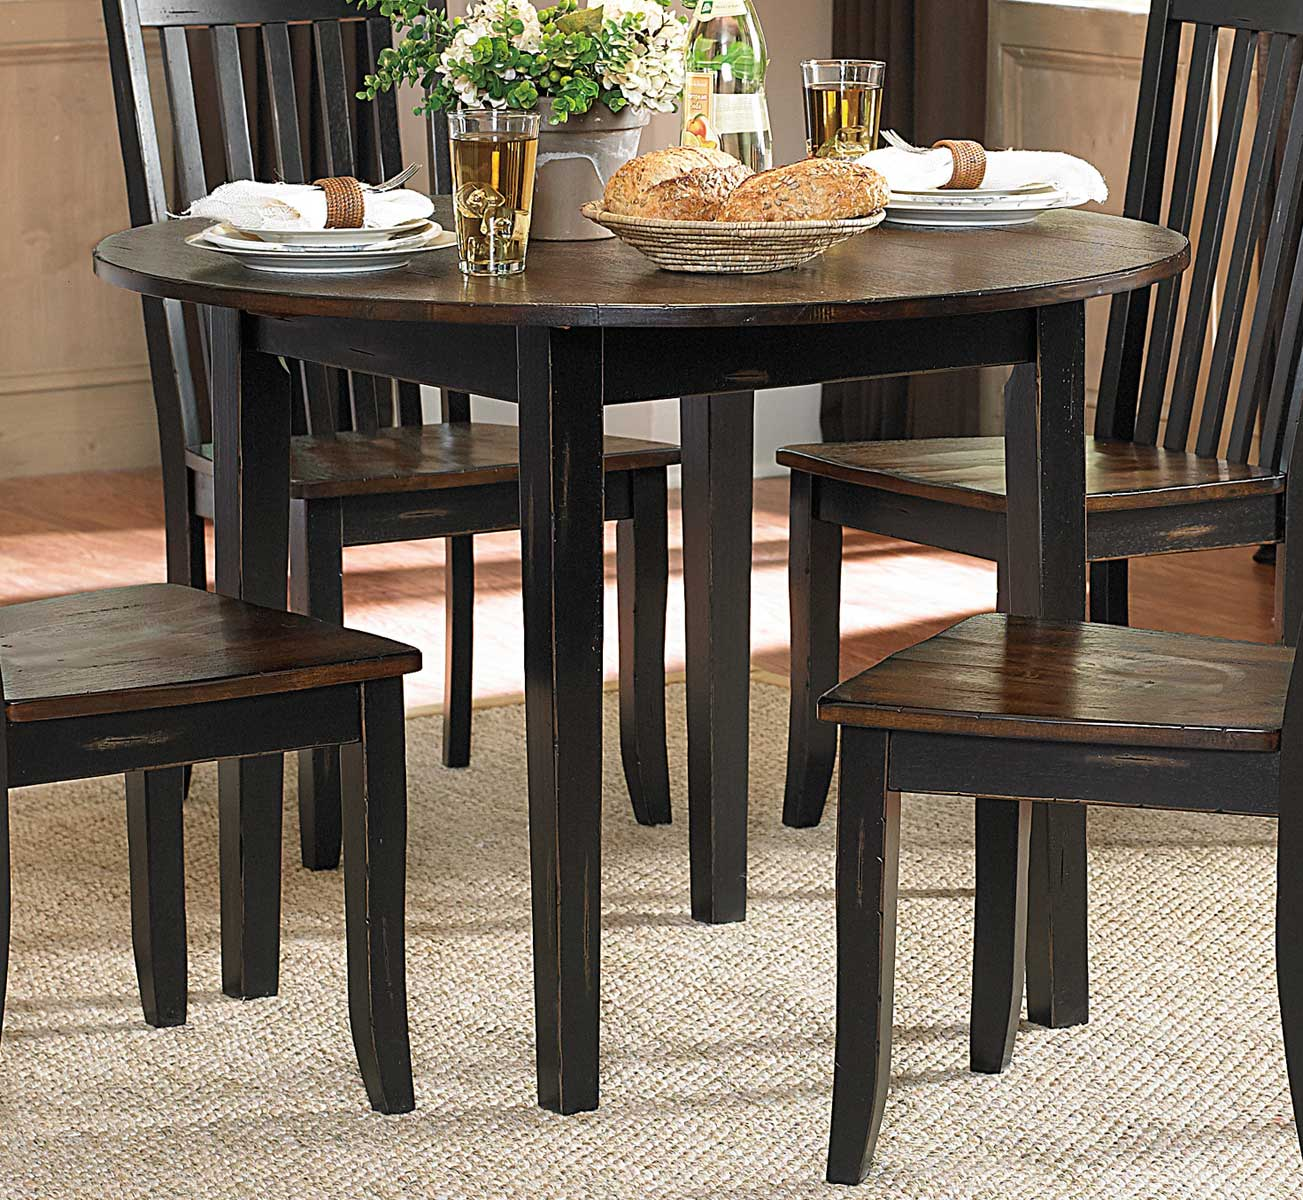 Homelegance Three Falls Round Dining Table With Drop Leaf   Two Tone Dark  Brown/Black